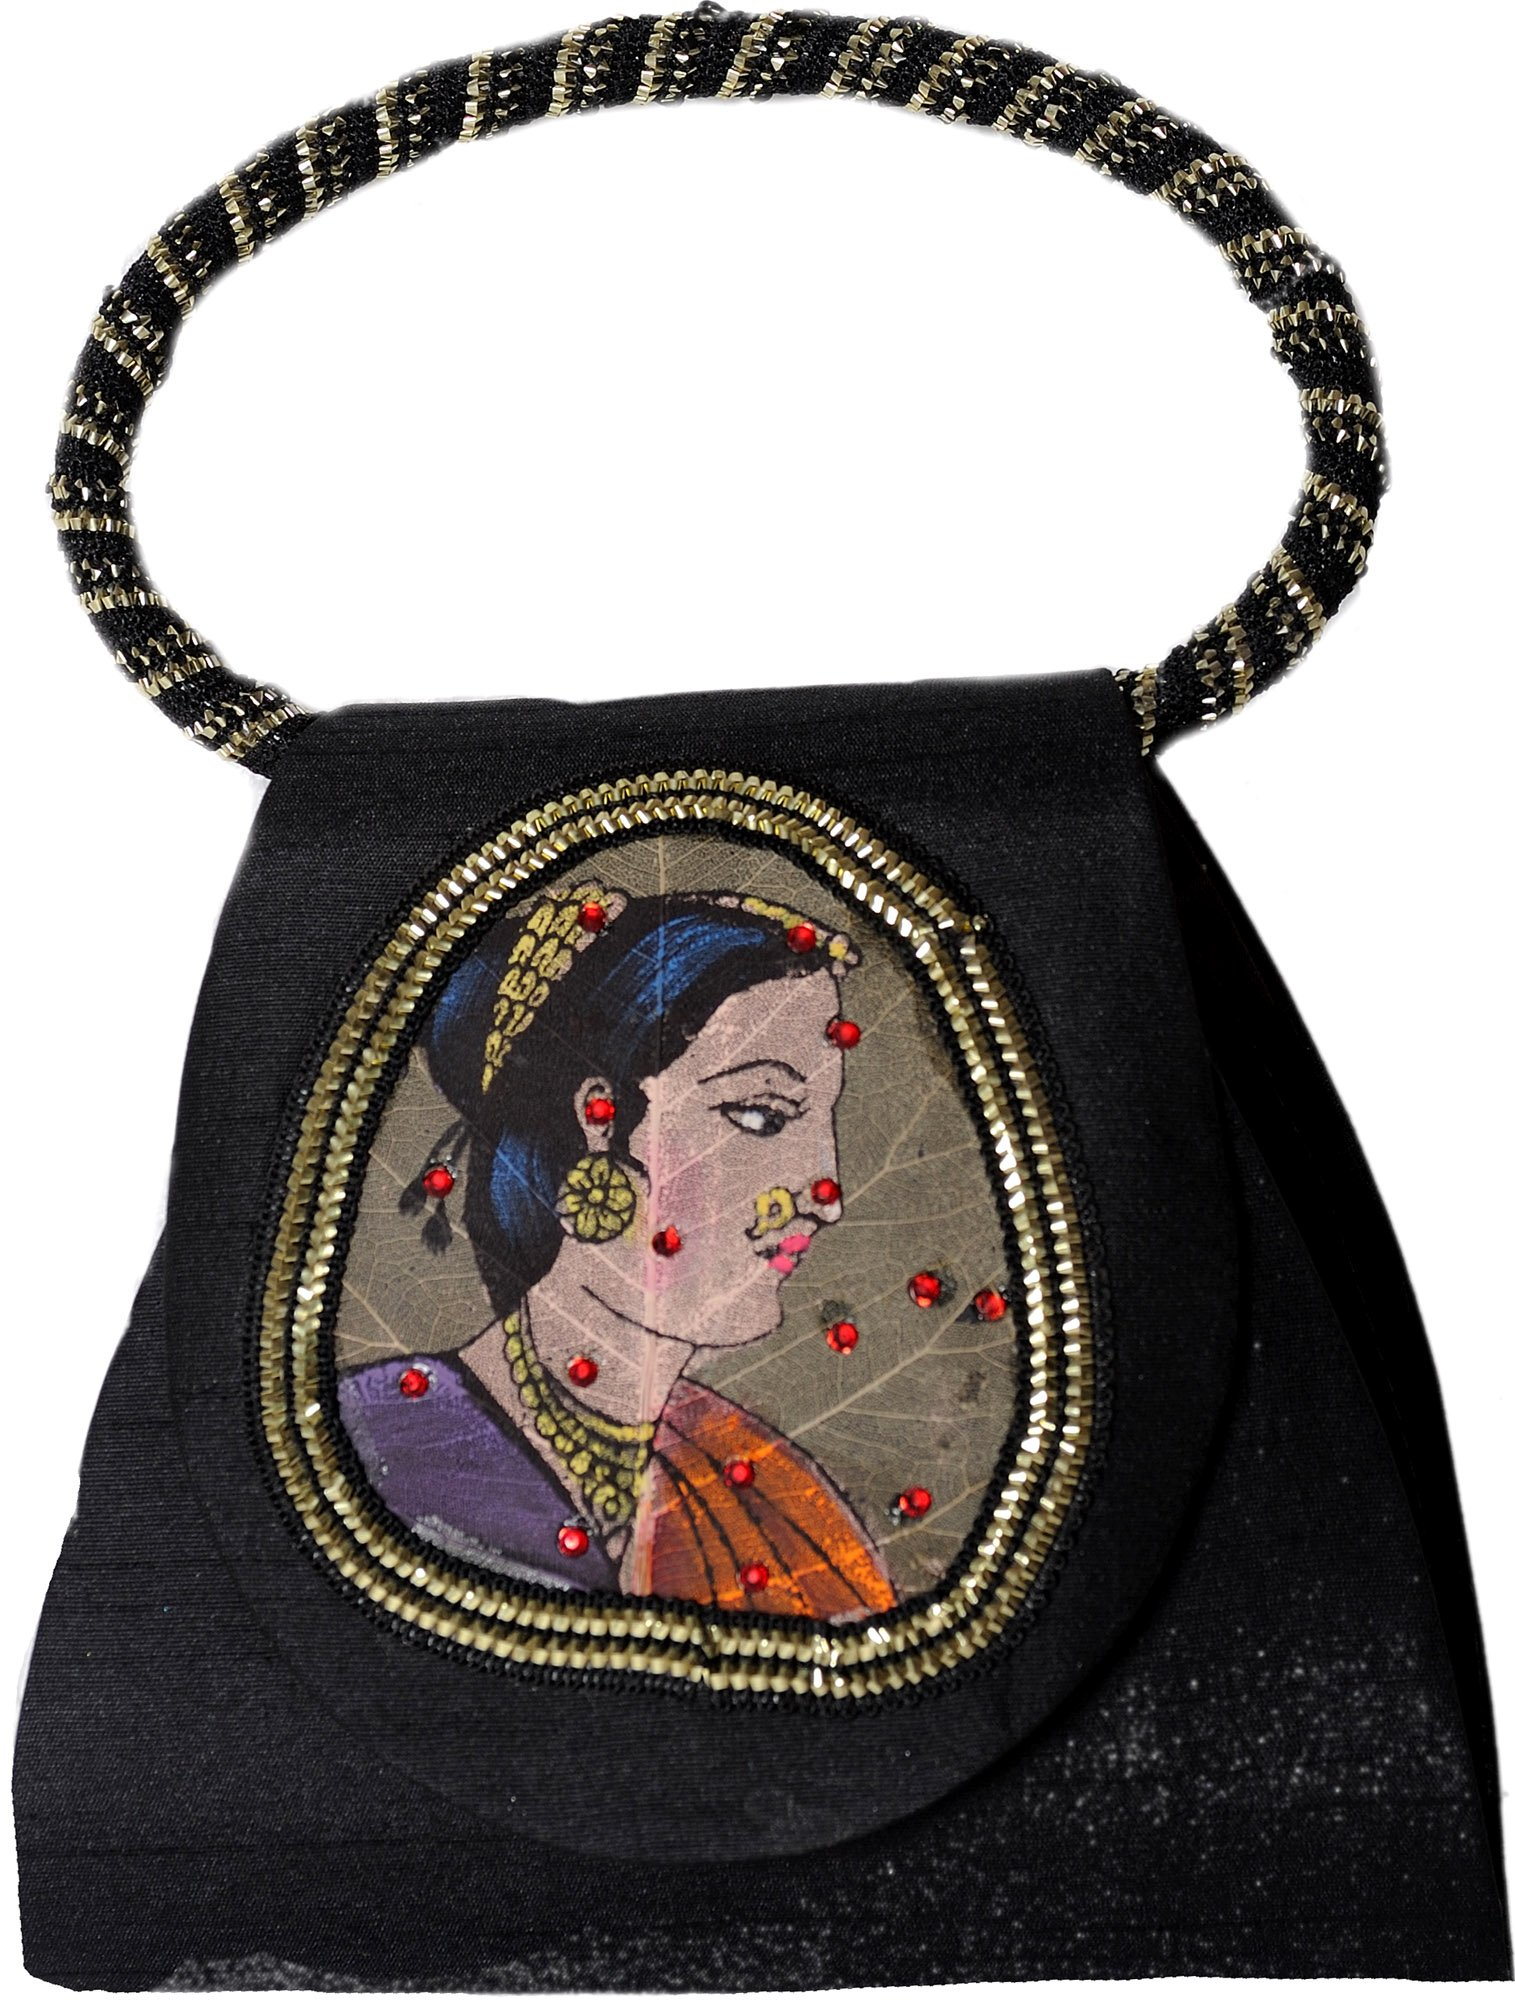 Exotic India Bracelet Bag with Beadwork and Painted Lady Figure on Fig Leaf - Color BlackColor One Size fits most